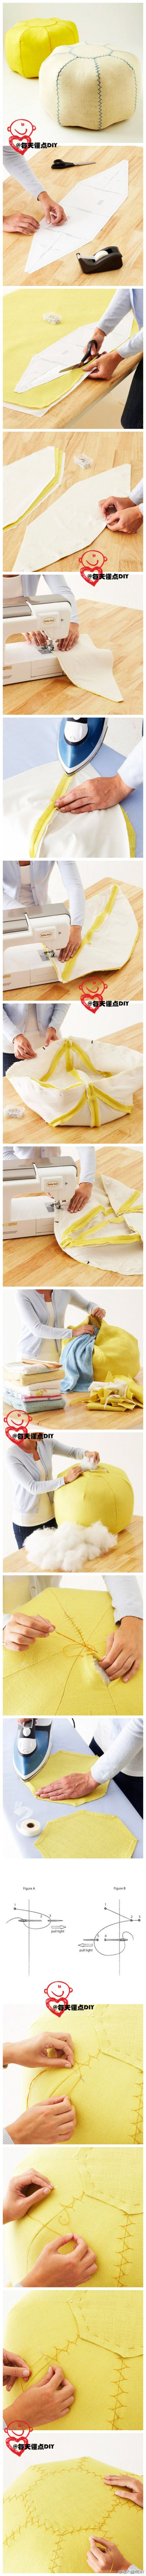 CushionsIdeas, Sewing, Diy Crafts, Inspiration Pictures, Floors Cushions, Beans Bags, Poufs Ottoman Diy, Diy Poufs, Floor Cushions